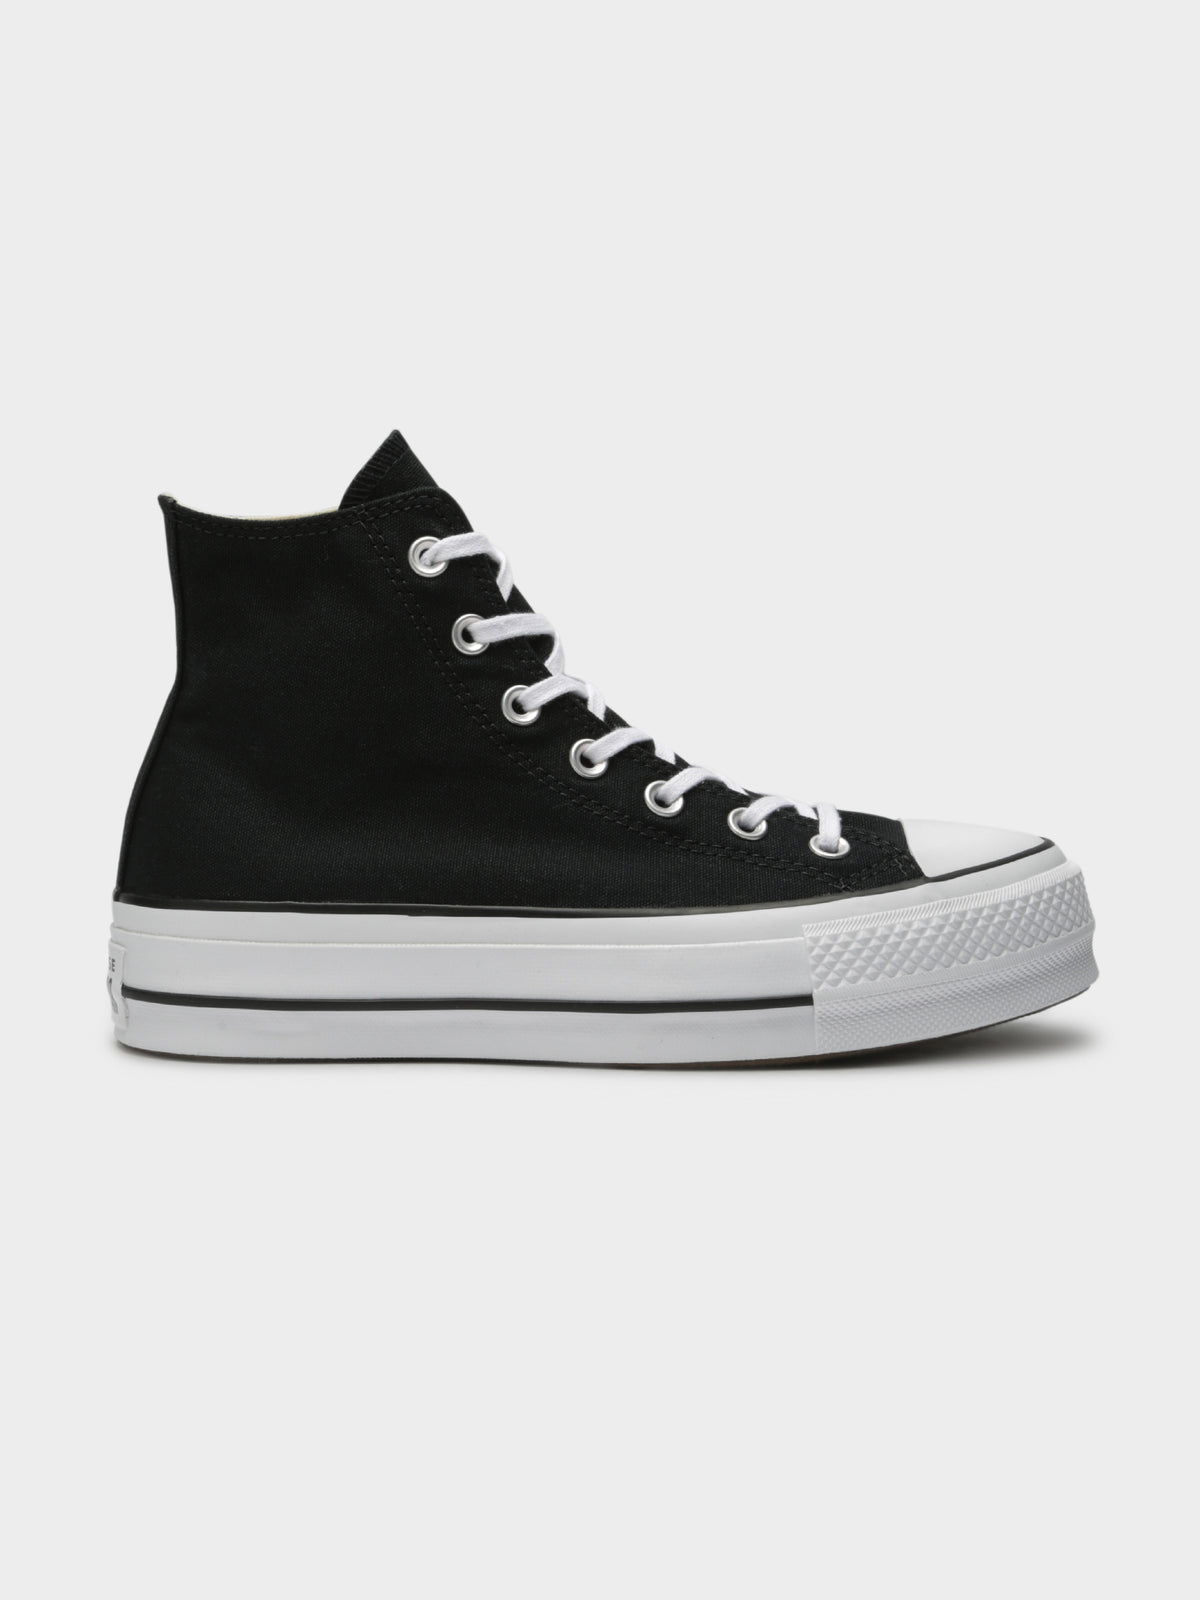 Womens Chuck Taylor All Star Lift Hi Platform Sneakers in Black Canvas